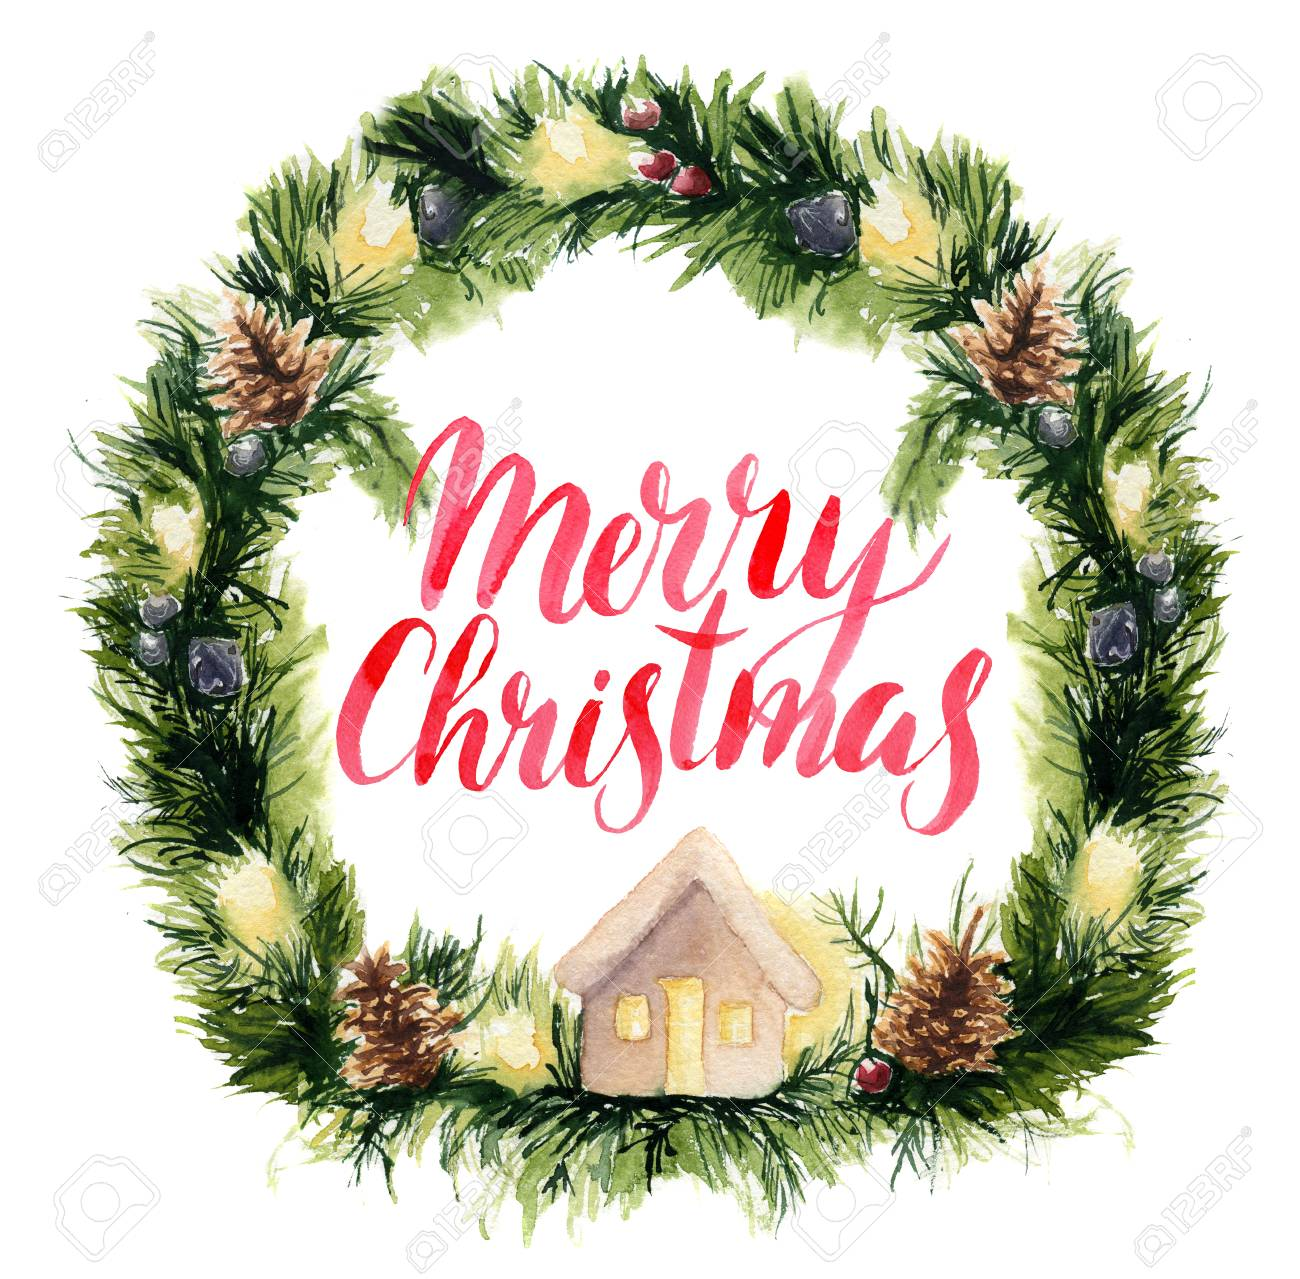 Watercolor Christmas Wreath Card With Merry Christmas Lettering